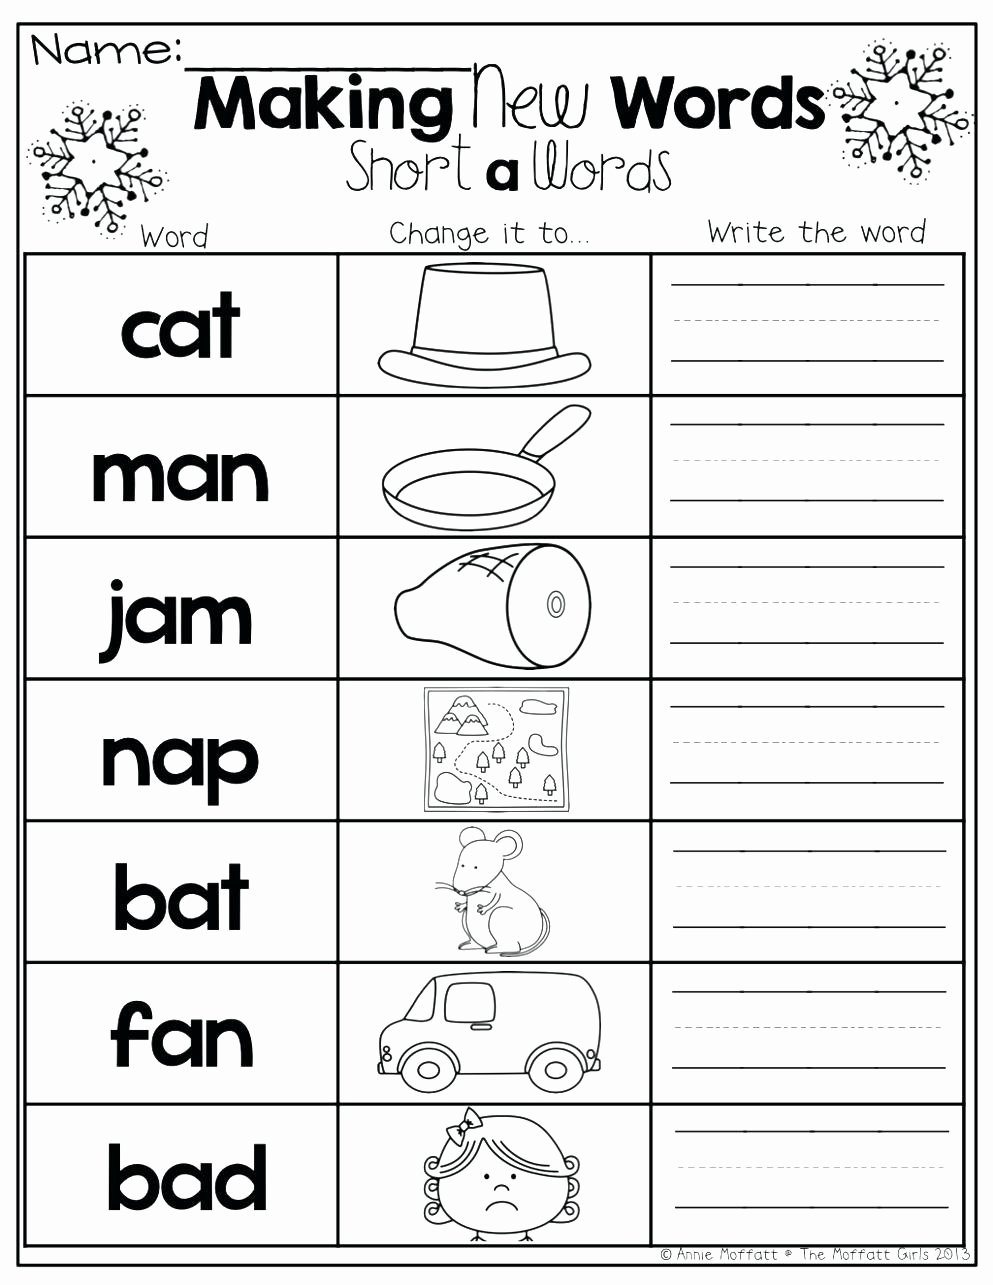 Phonics Worksheets for Preschoolers Inspirational Worksheet Free Kindergarten Readingheetsheet Book Levels